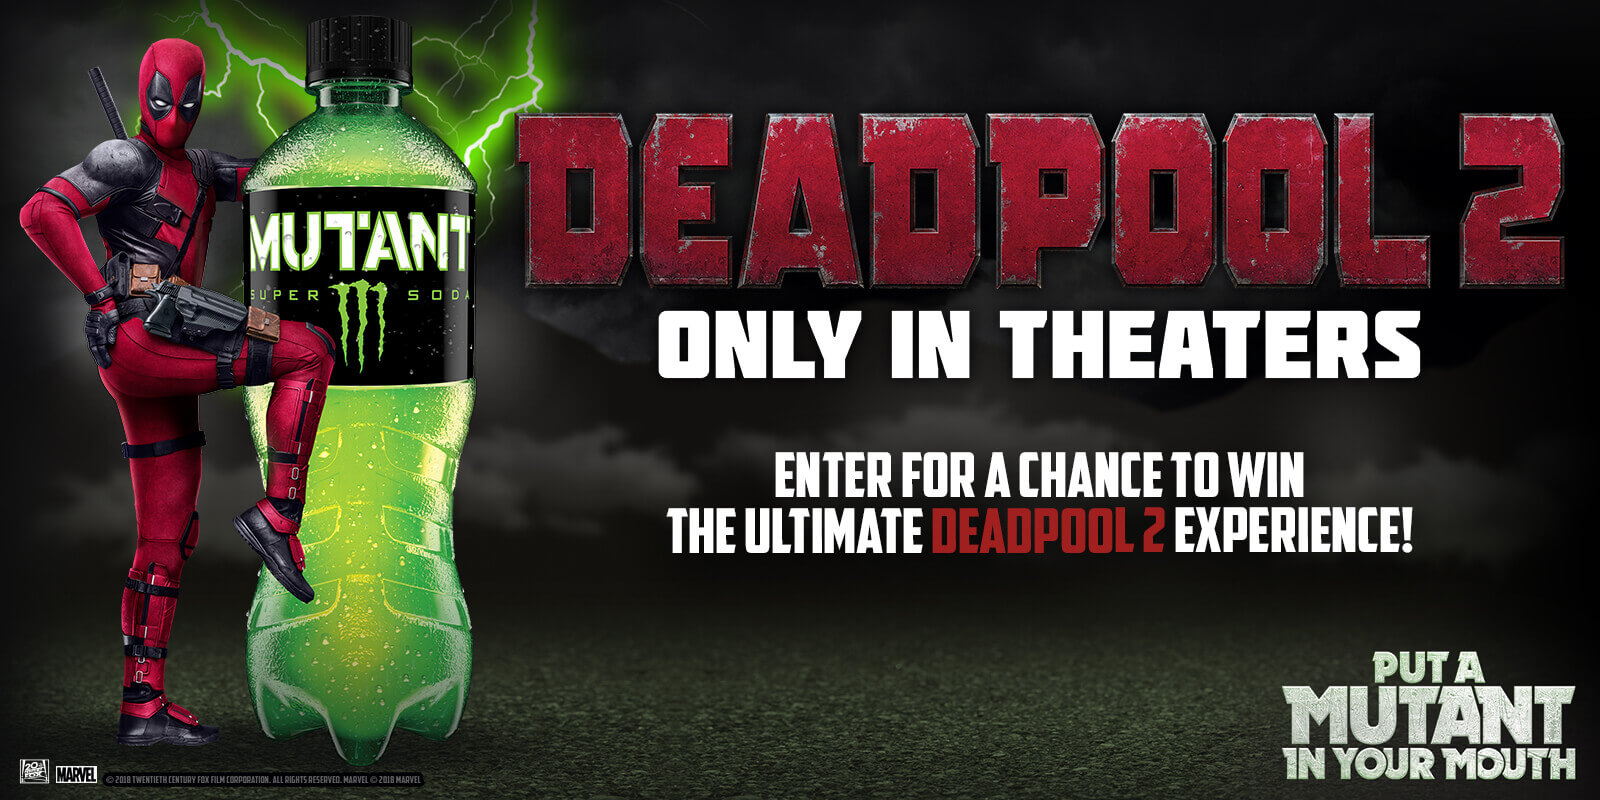 The Mutant® Ultimate Deadpool 2 Experience